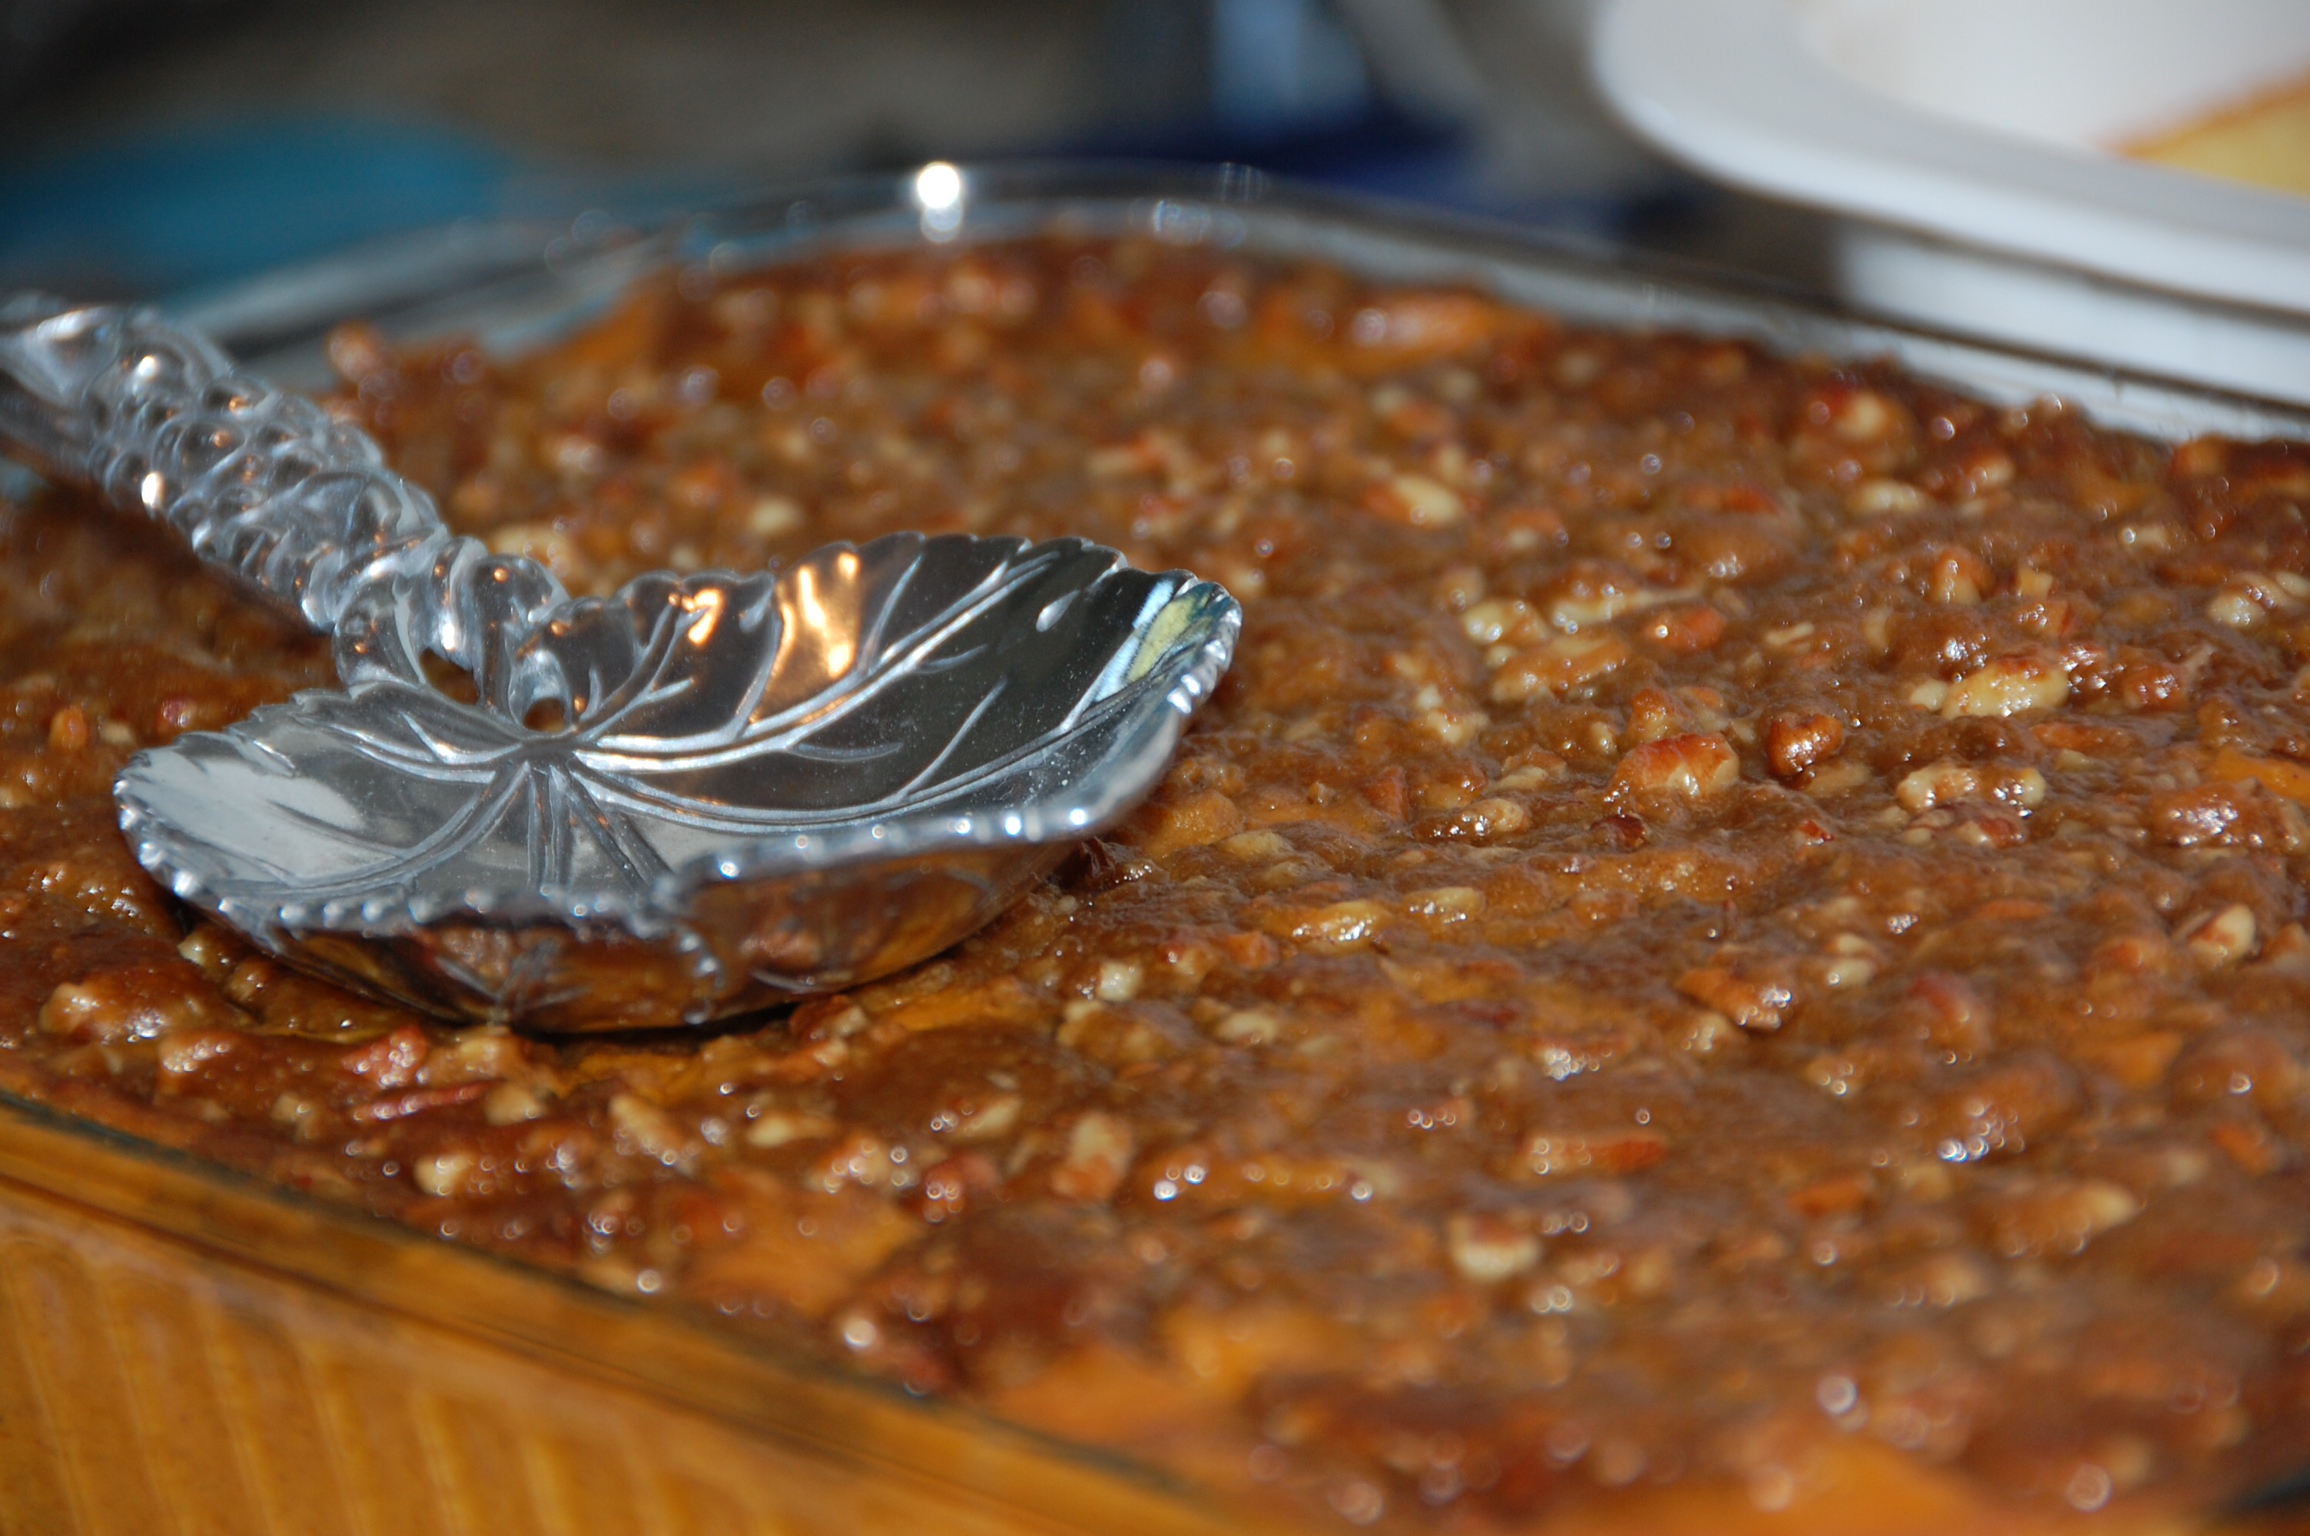 Sweet Potato Casserole with Pecan topping recipe by Crockpot Empire